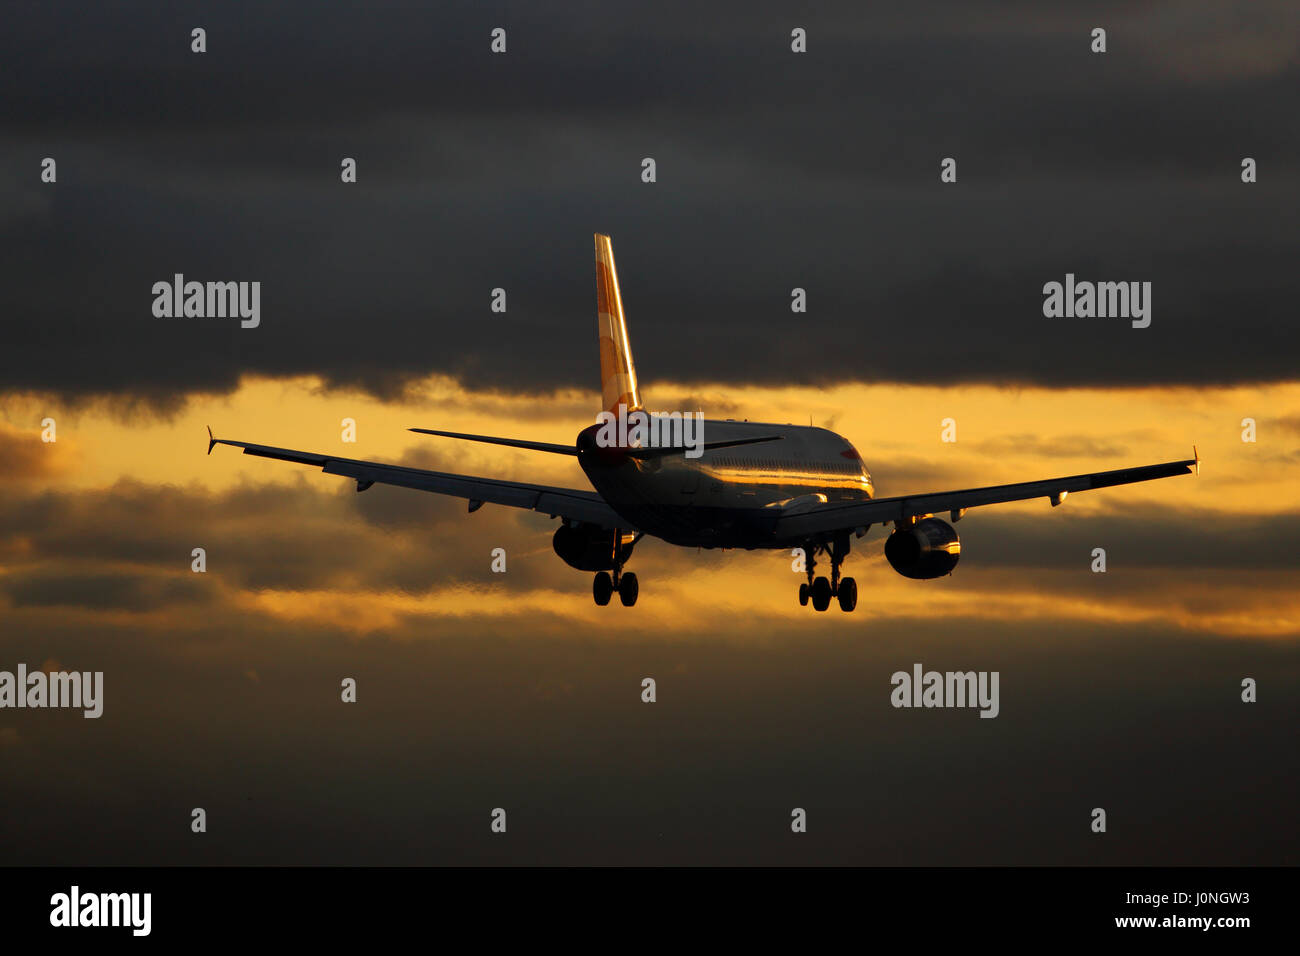 G-EUUE British Airways Airbus A320-200 cn-1782 Landing at London Heathrow airport at sunset - Stock Image